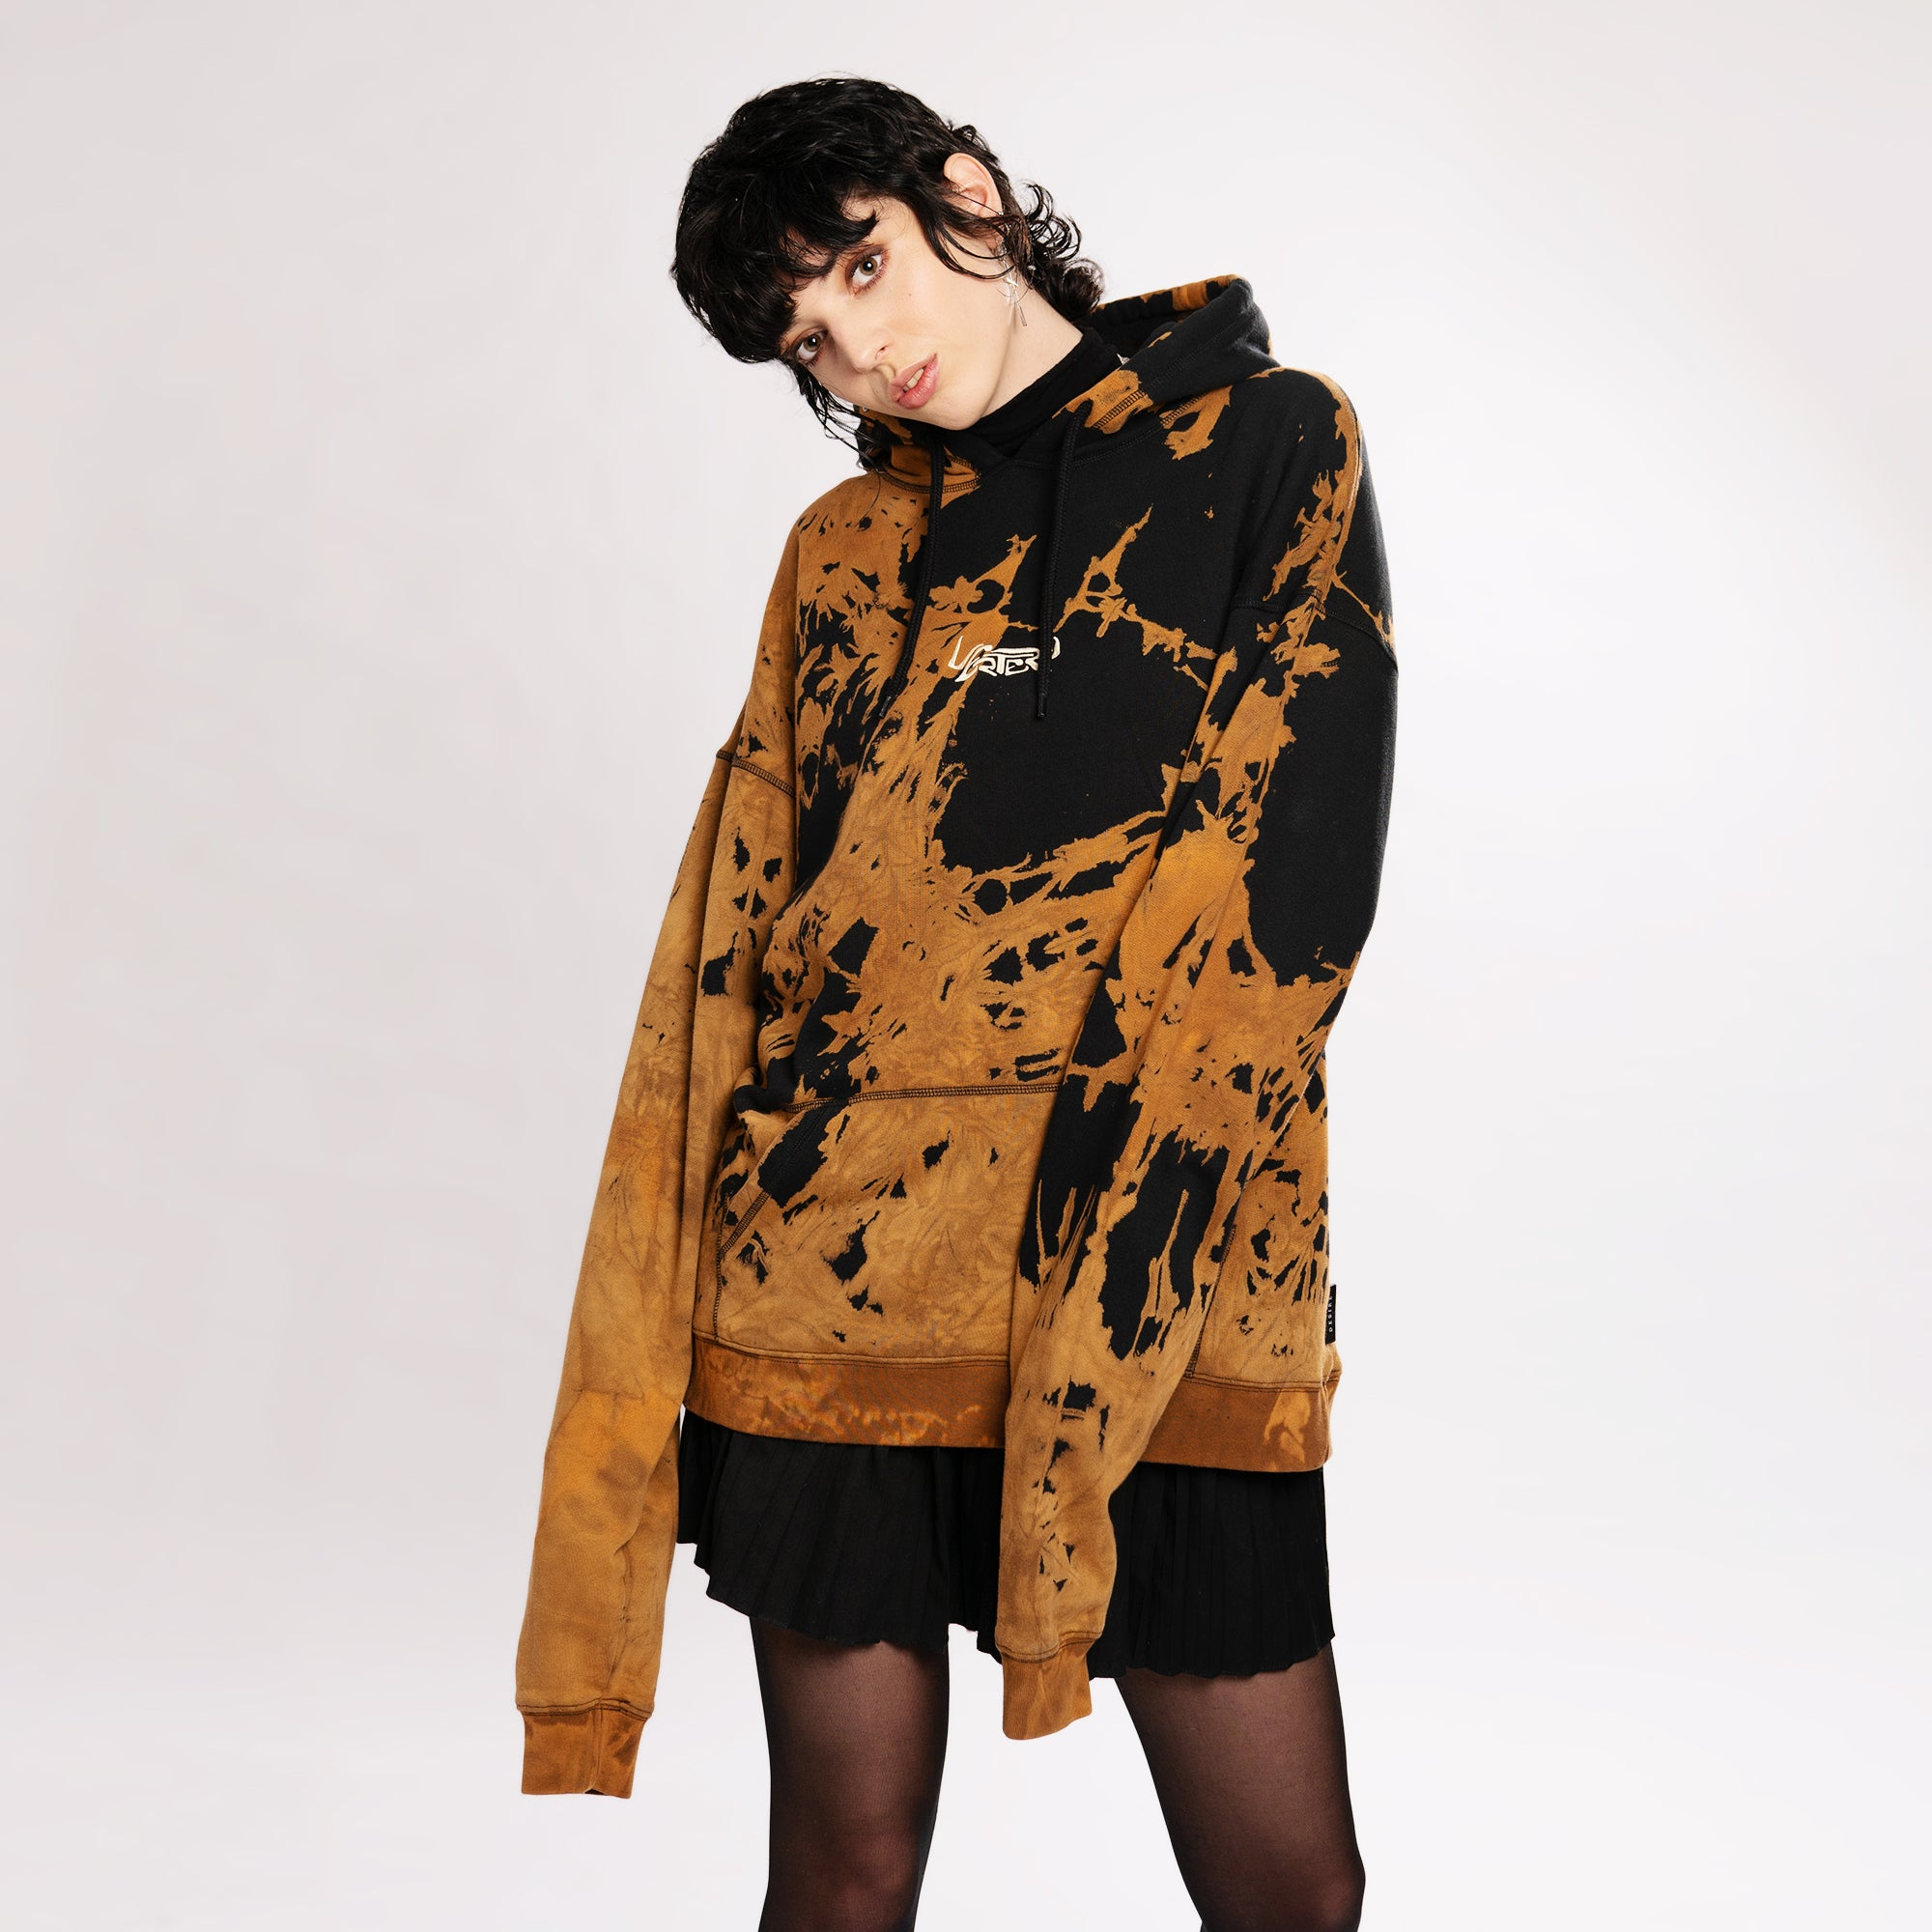 ULTRA HEAVY OVERSIZE SPACE HOODIE - BLACK/ORANGE